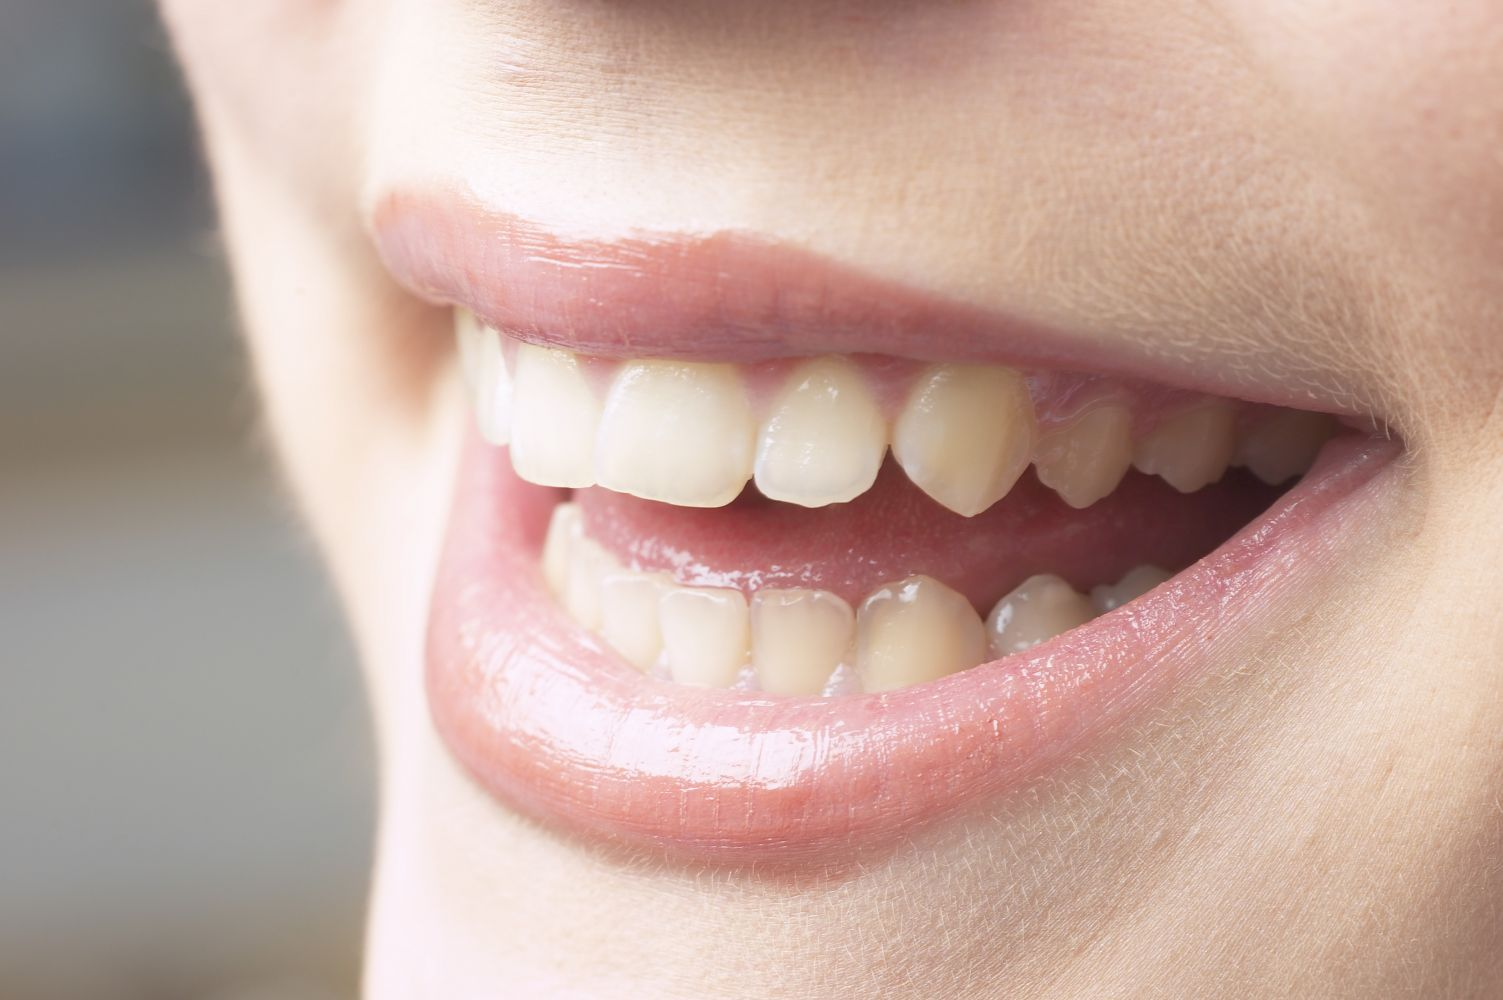 Healthy smile due to good dental health services in Anchorage, AK